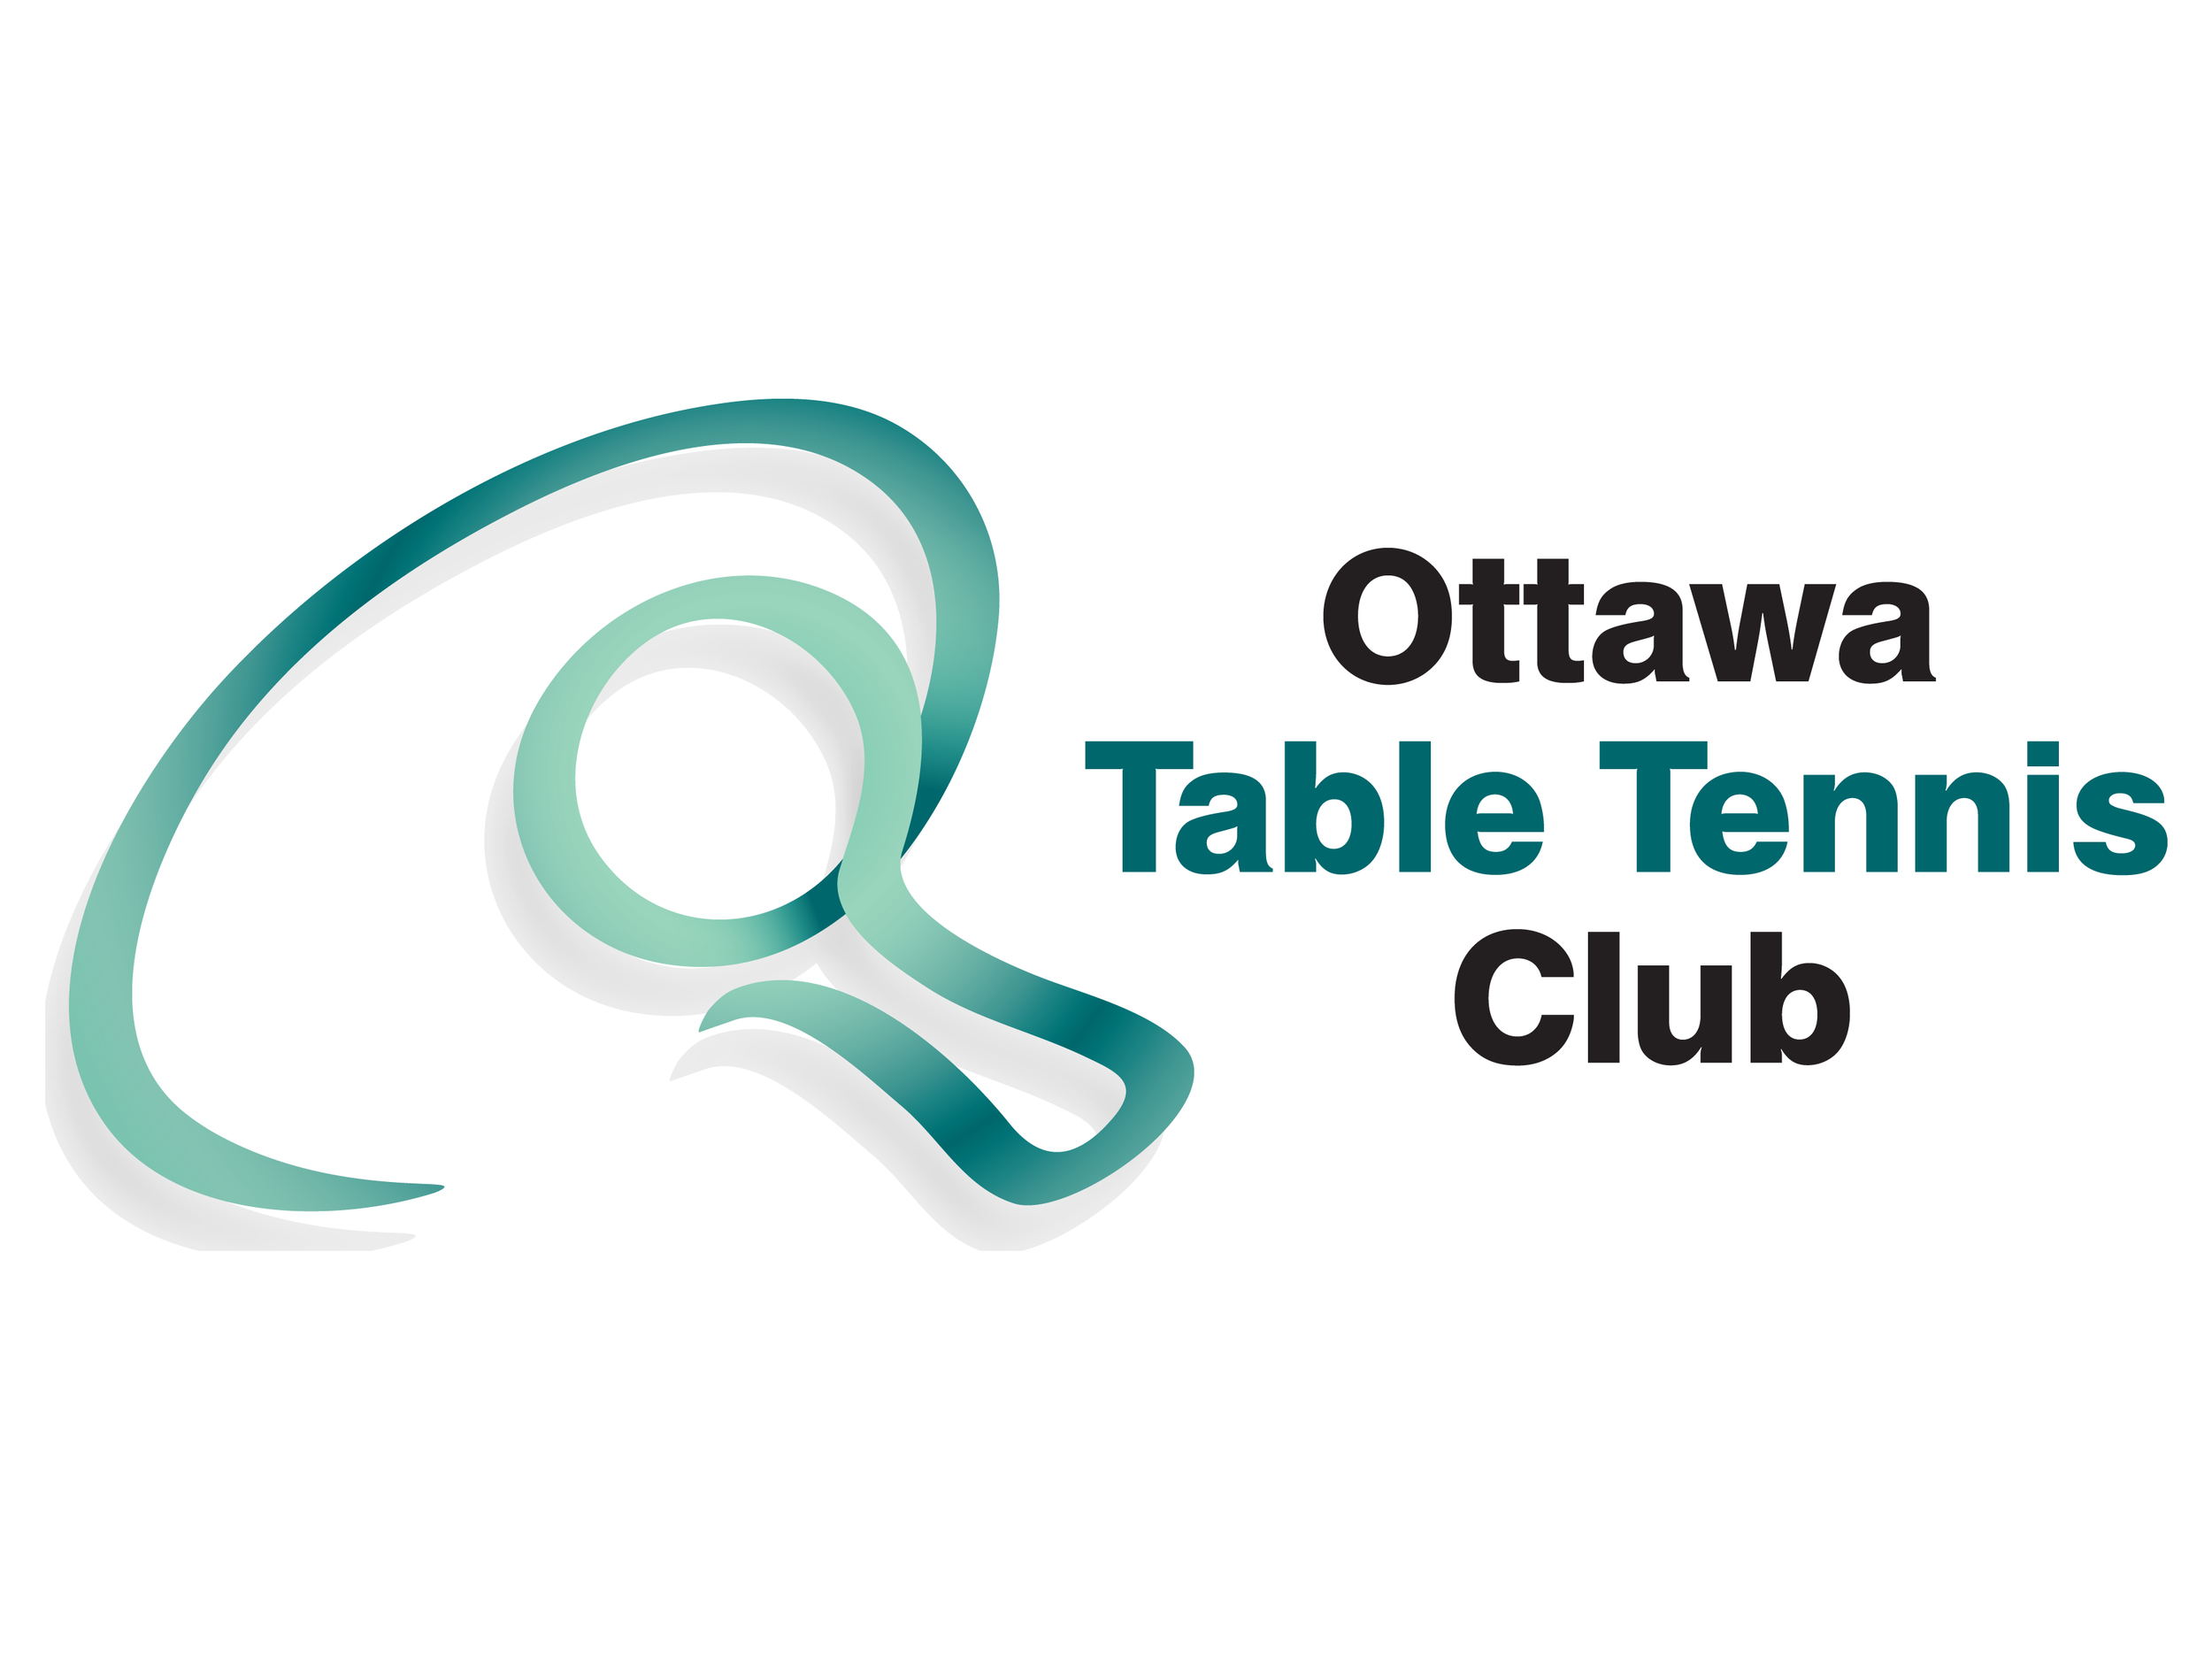 Ottawa table tennis club.png